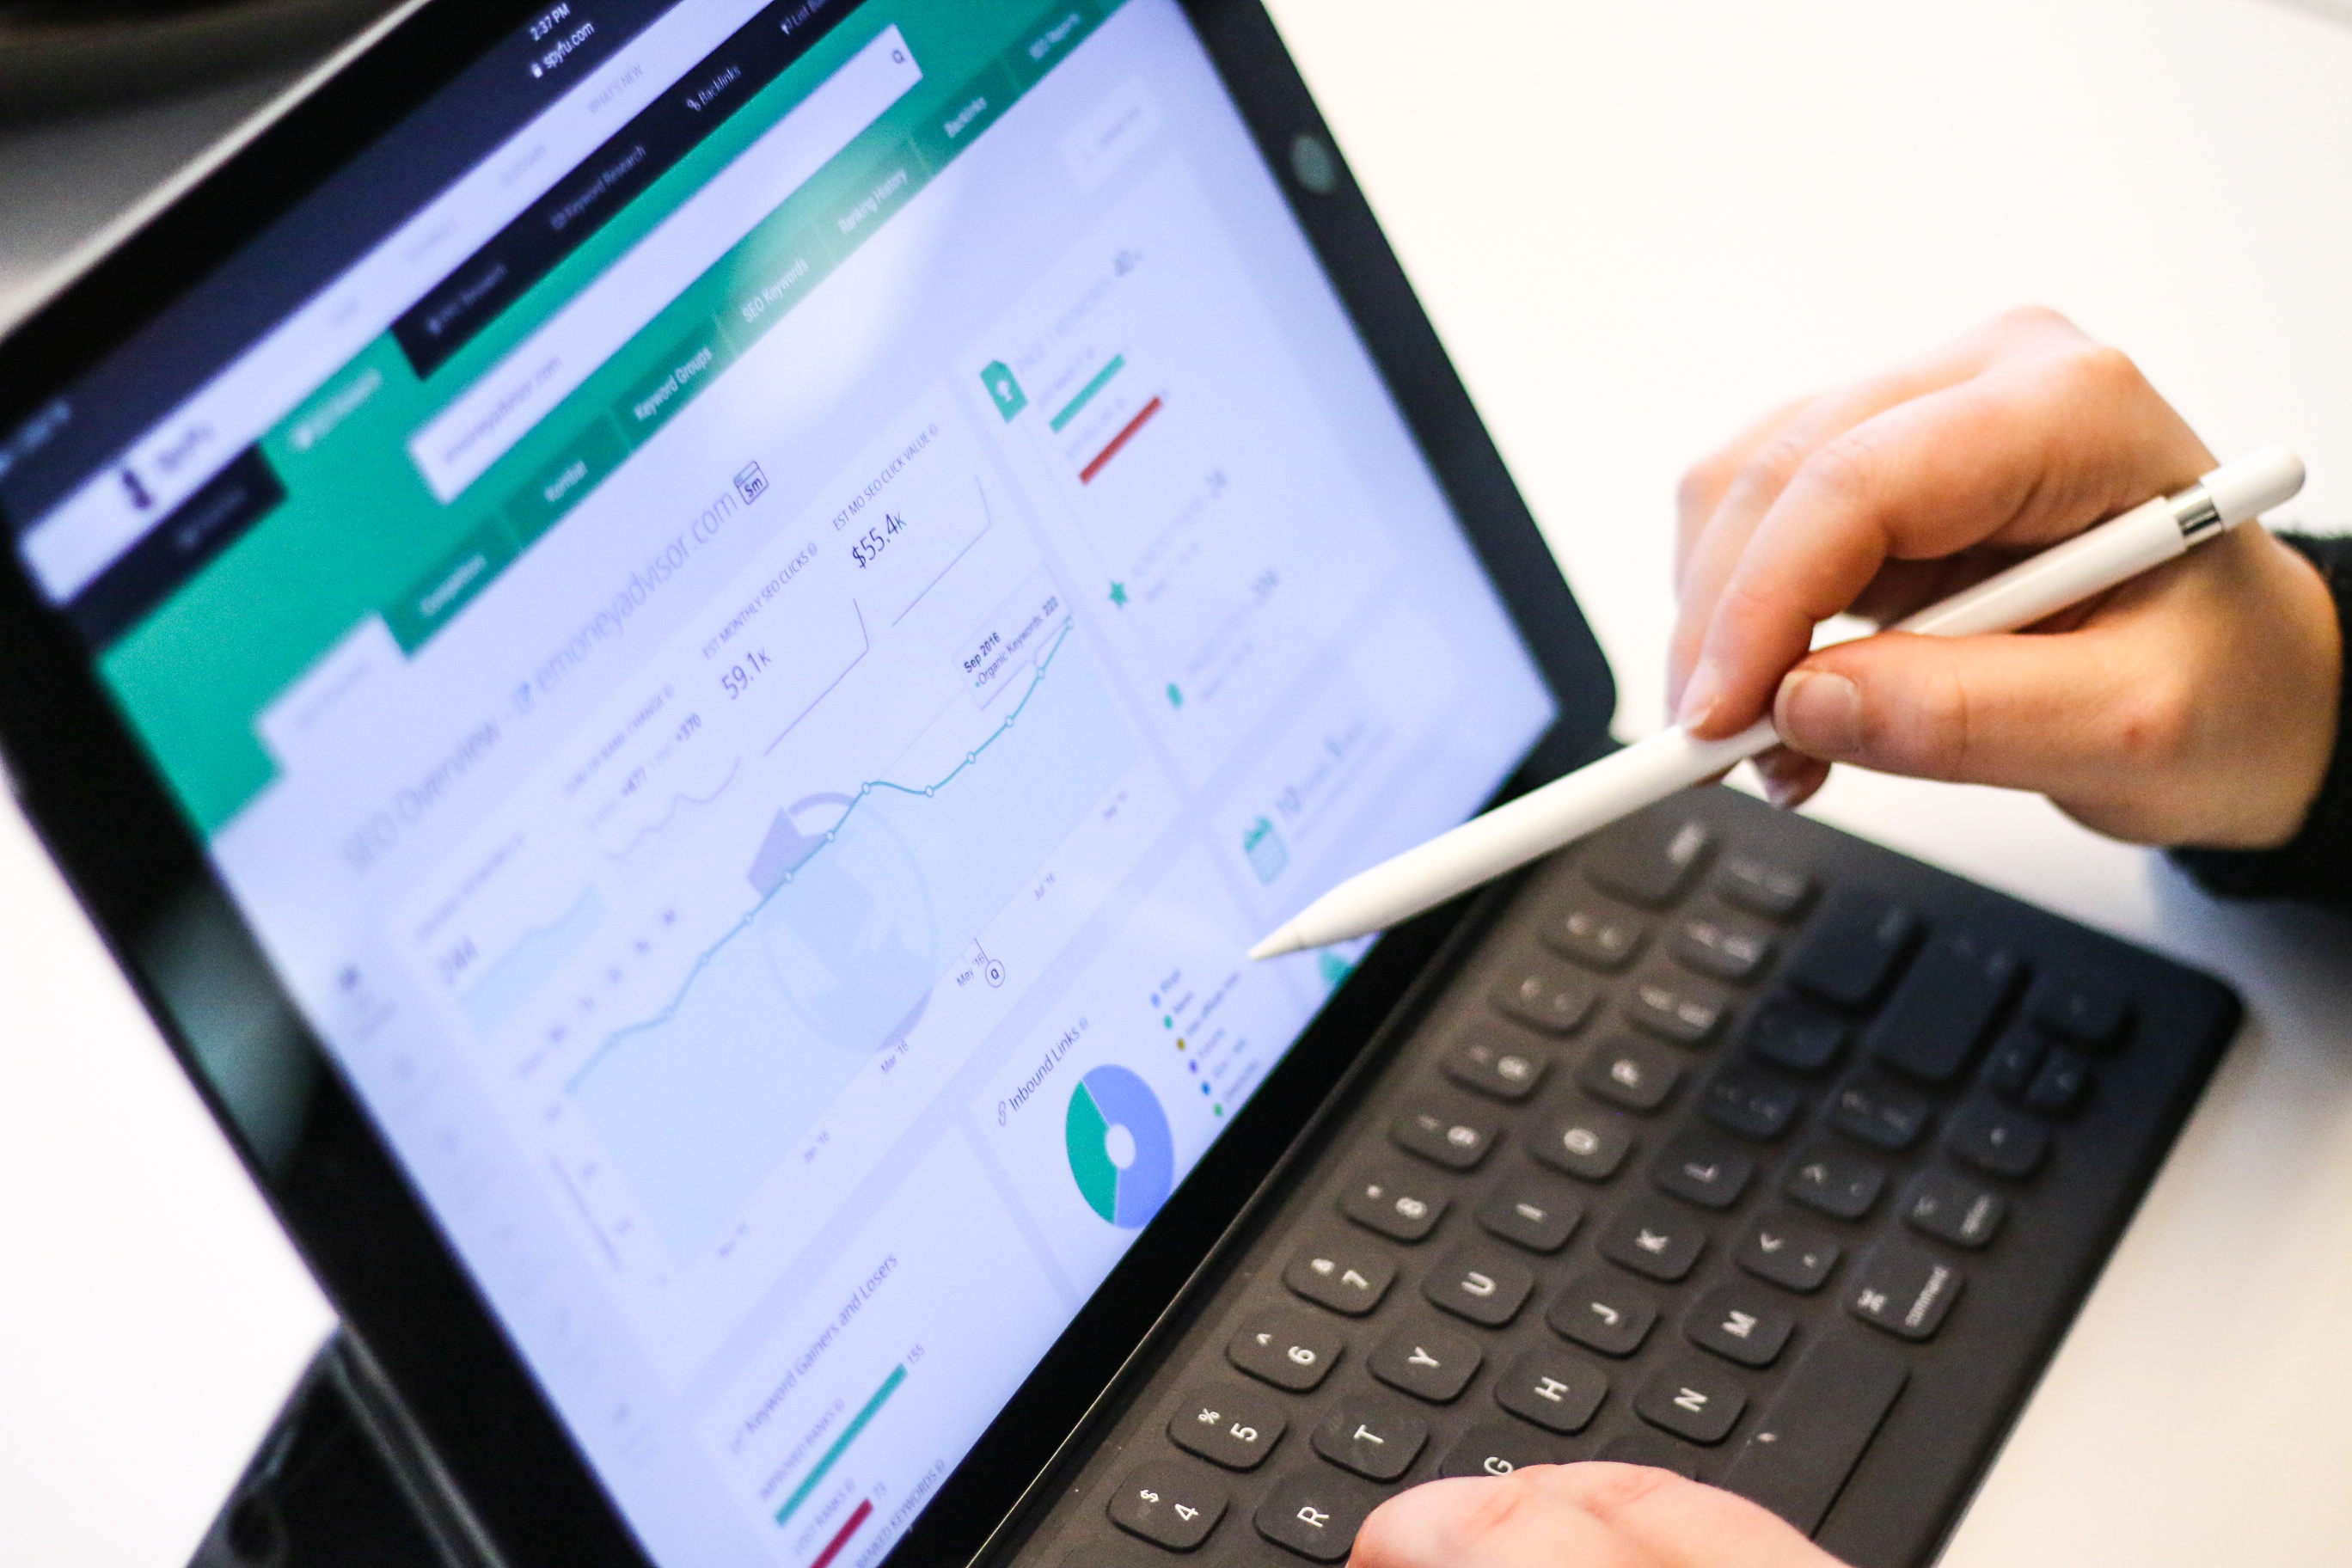 A stylus points to a tablet screen, showing the metrics for a business' marketing campaign.